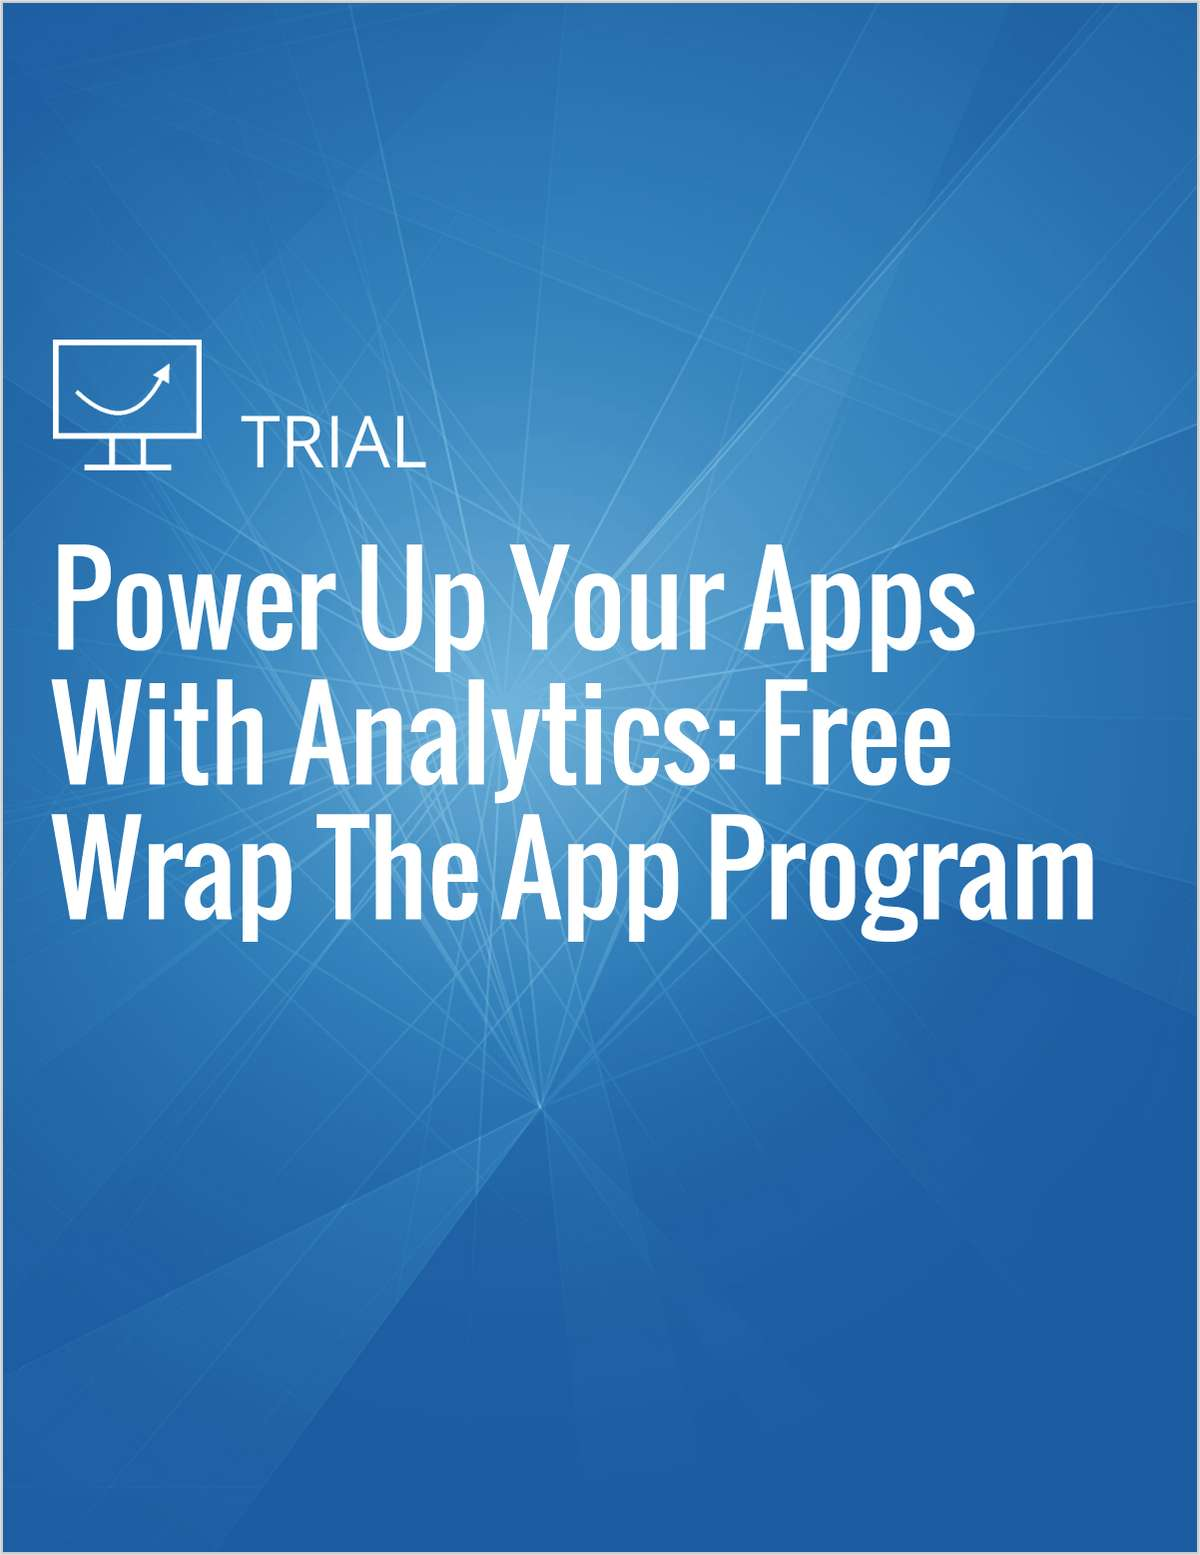 Power Up Your Apps With Analytics: Free Wrap The App Program